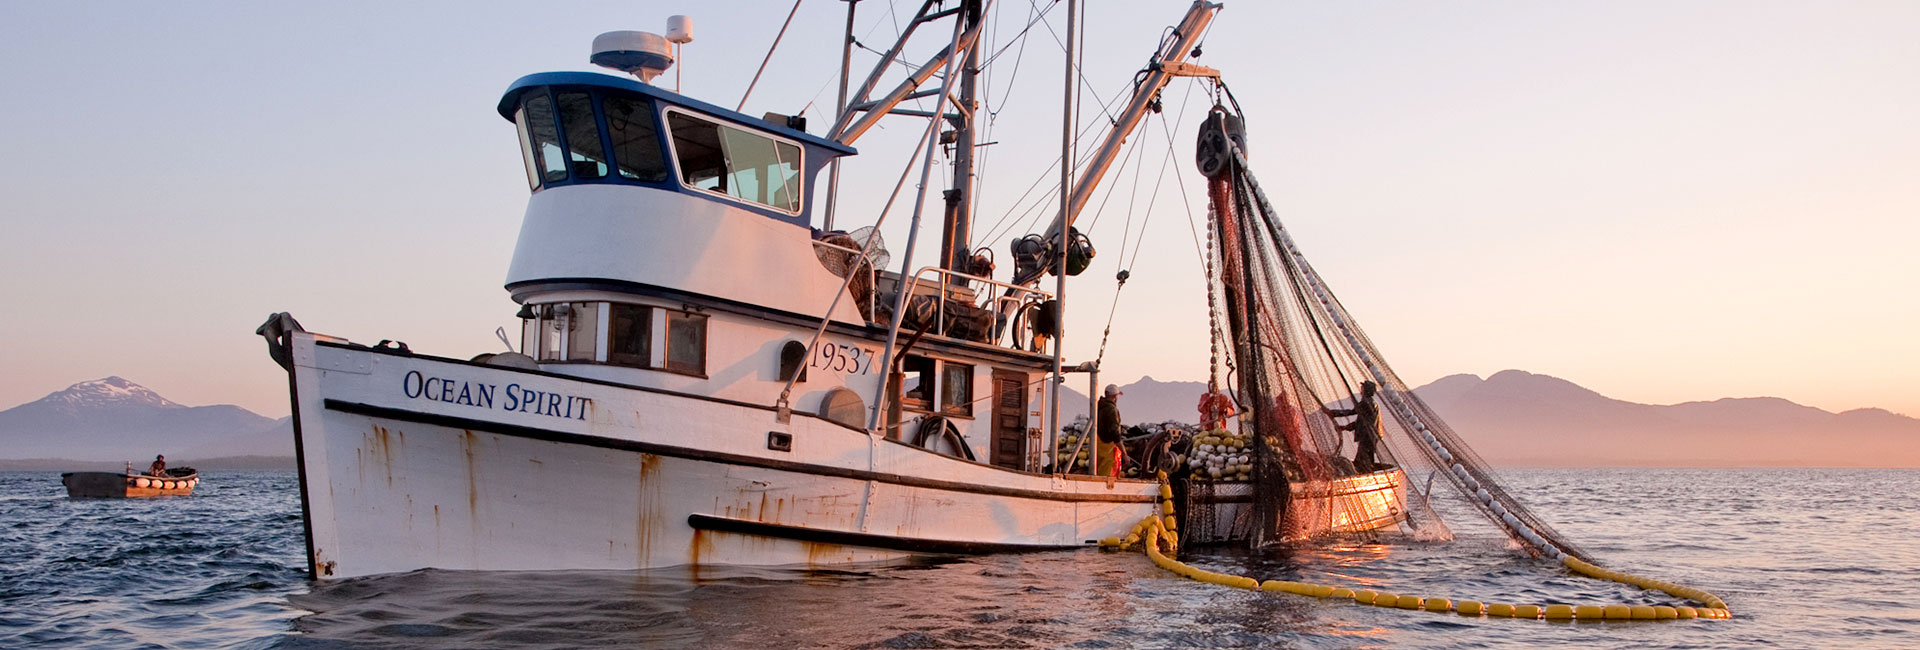 Commercial Fishing in Alaska